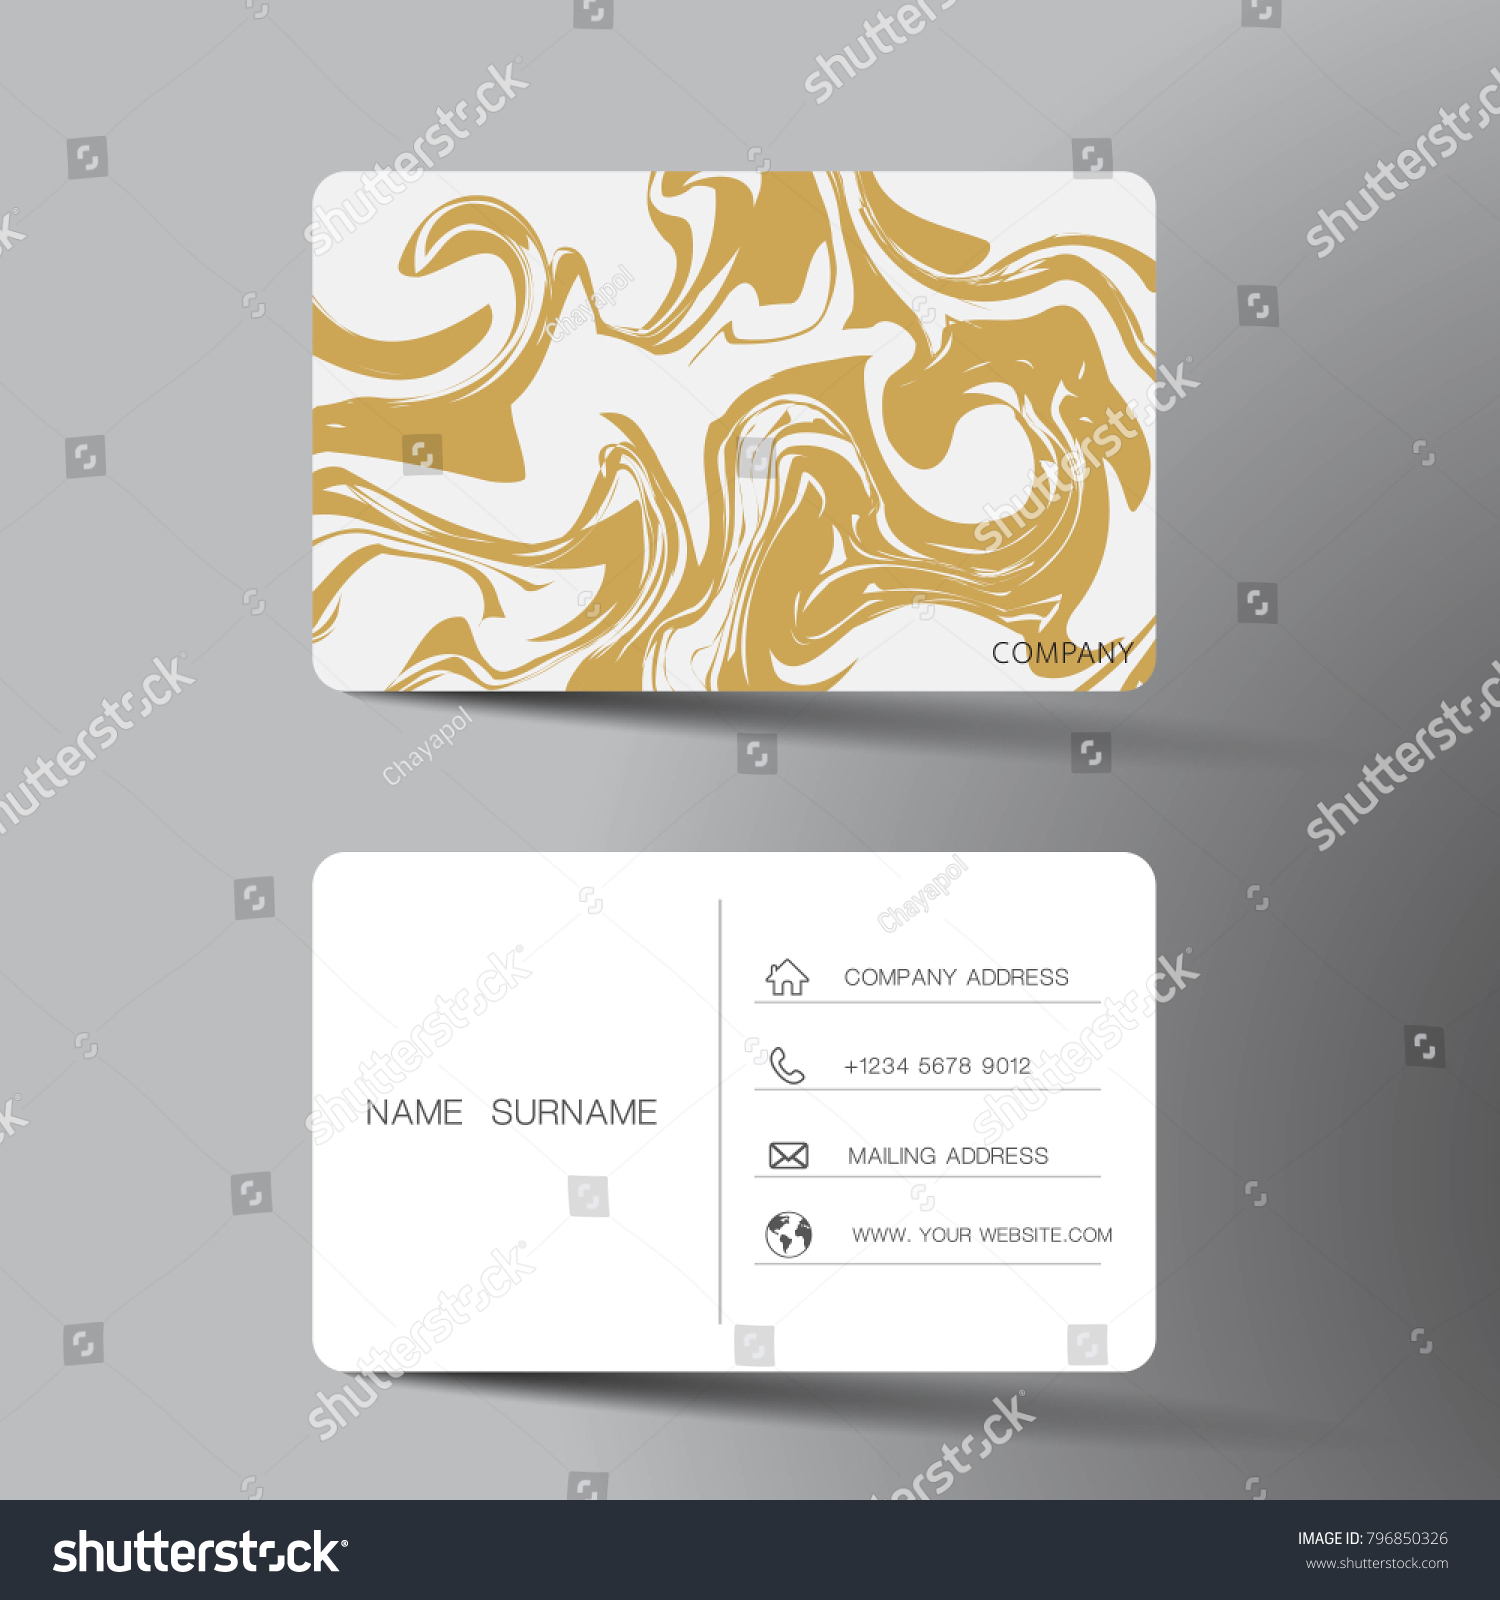 White Gold Business Card Template Design Stock Vector